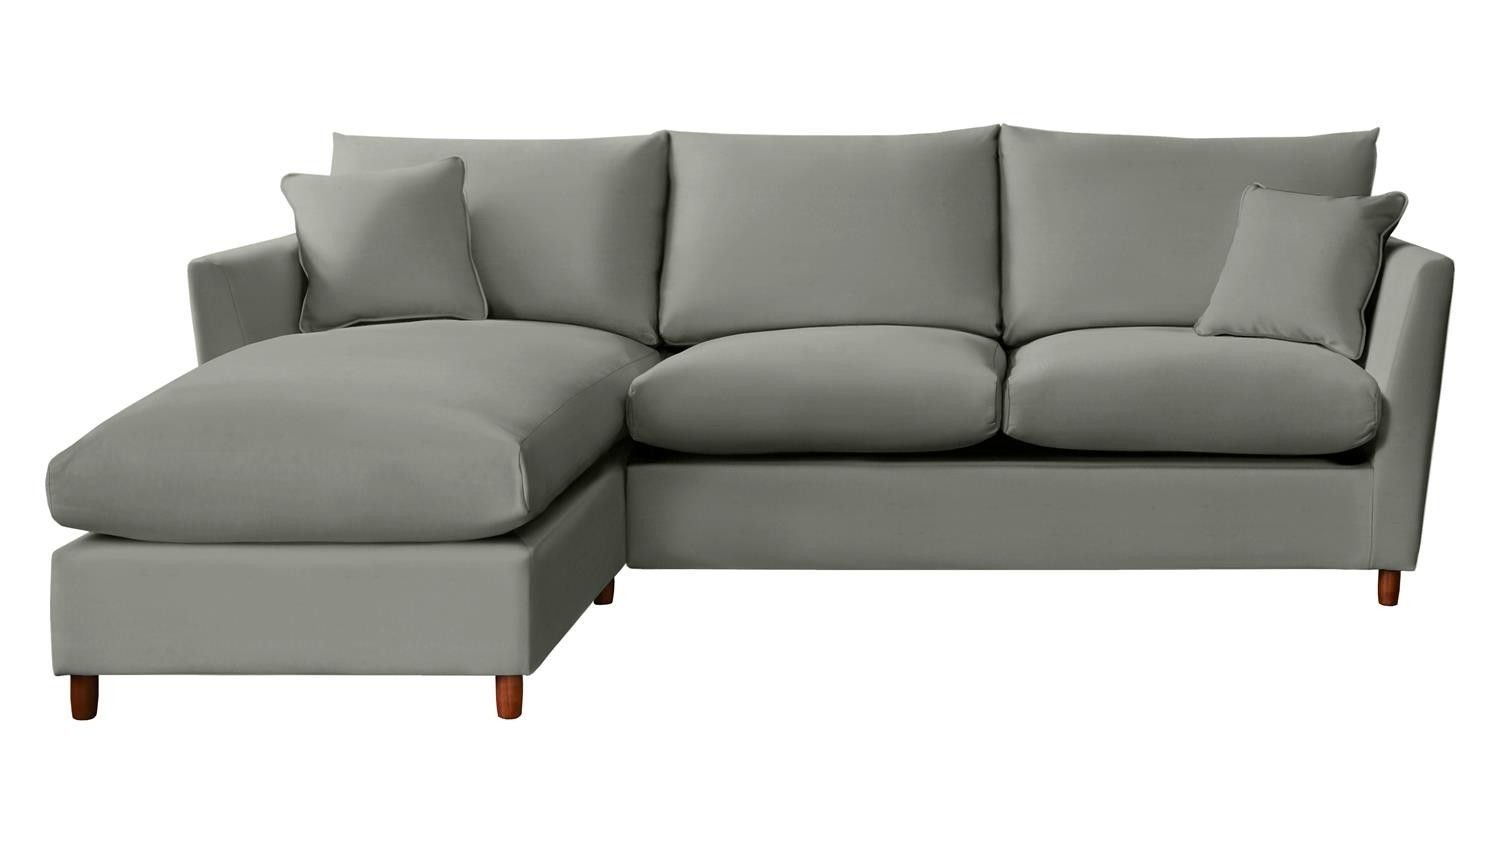 The Ansty 5 Seater Left Chaise Sofa Bed